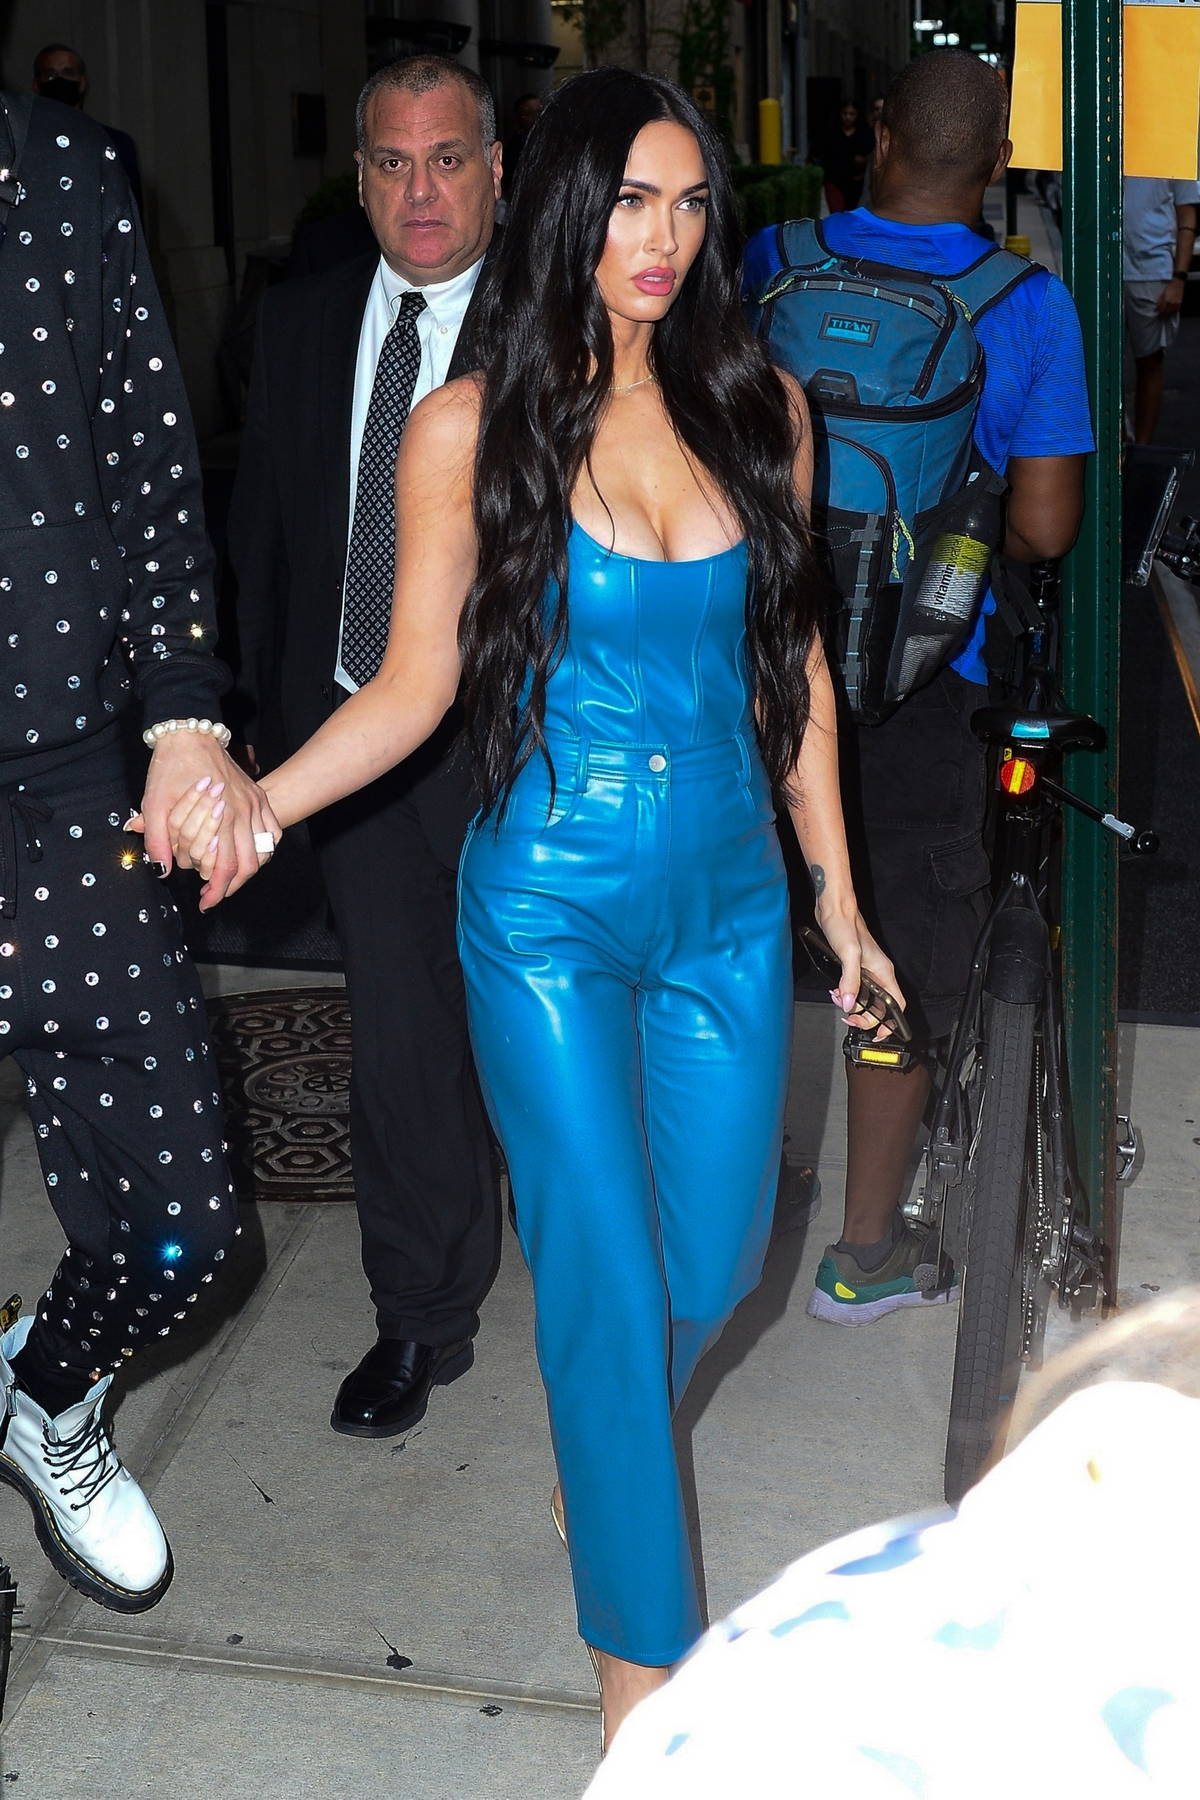 Megan Fox looks incredible in a blue leather outfit while heading out with Machine Gun Kelly in New York City